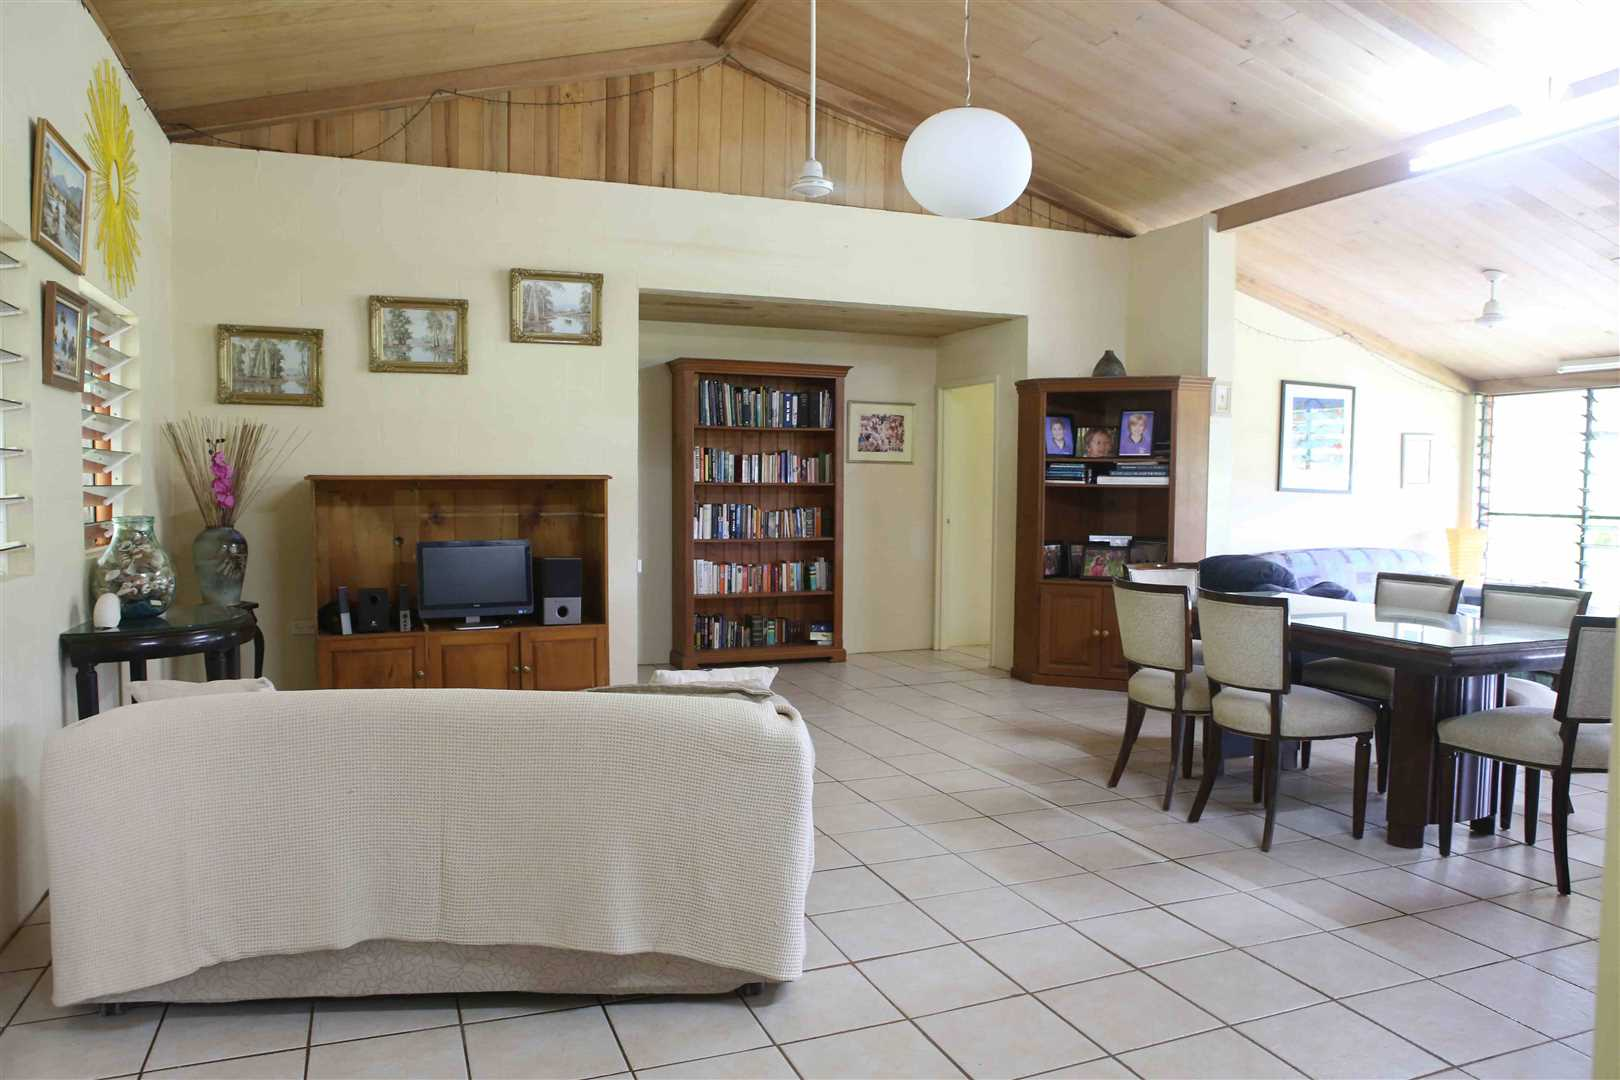 Inside view of part of home showing part of the open plan living and dining areas, photo 1